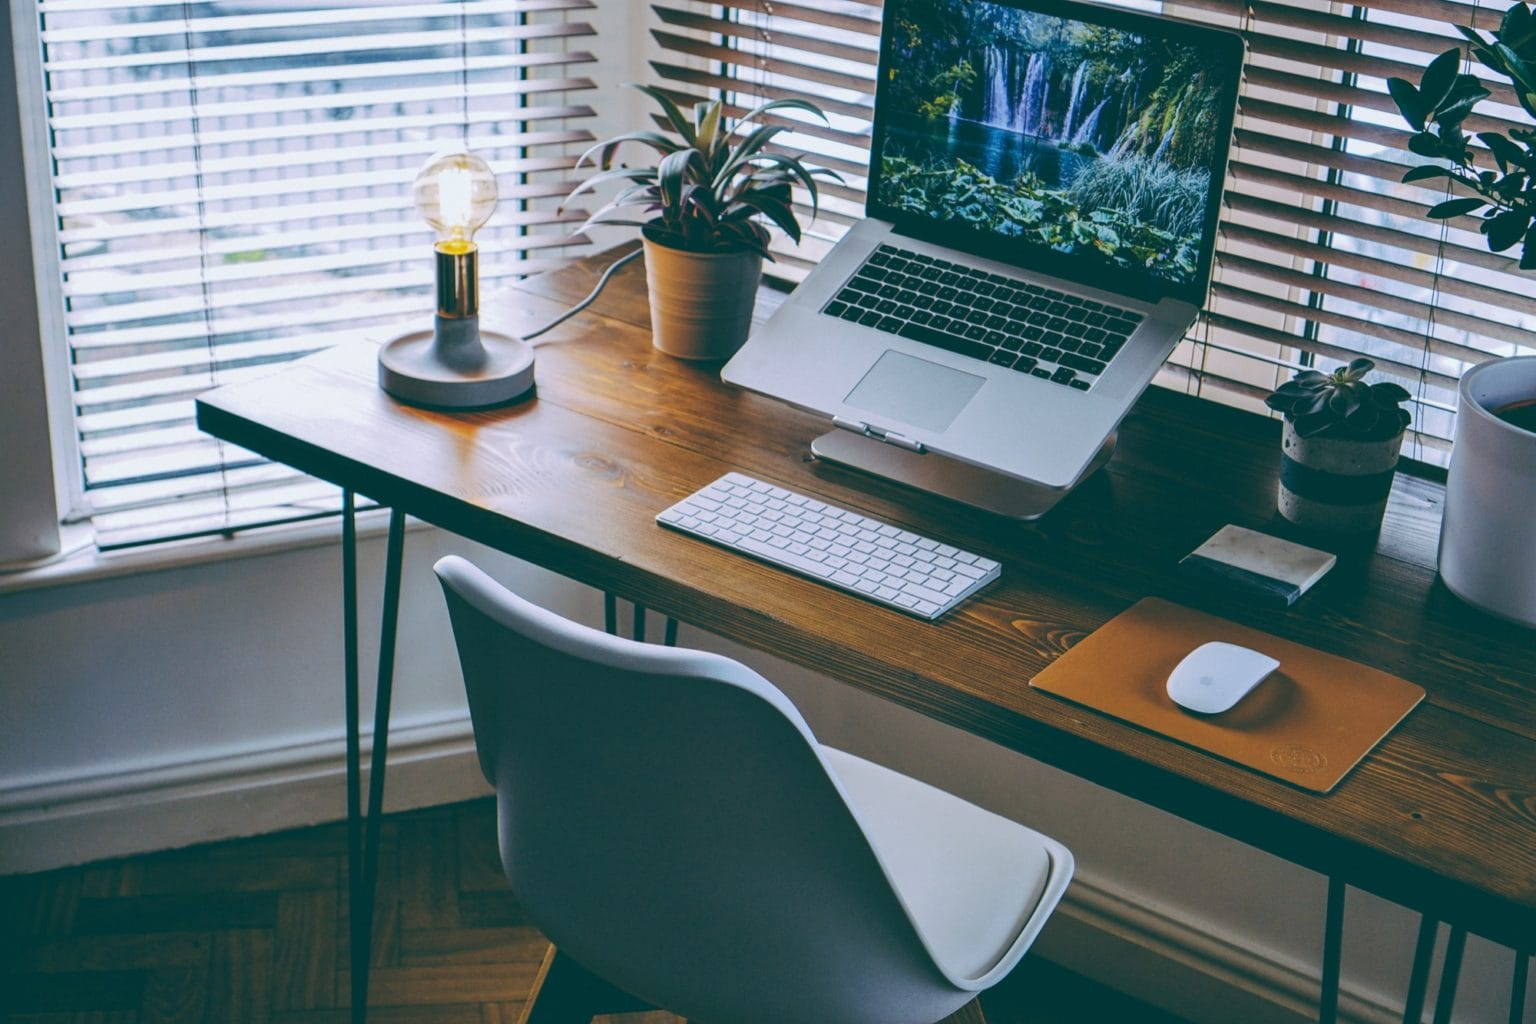 Telecommuting tips: Who wants to go to an office when they can work from home like this?